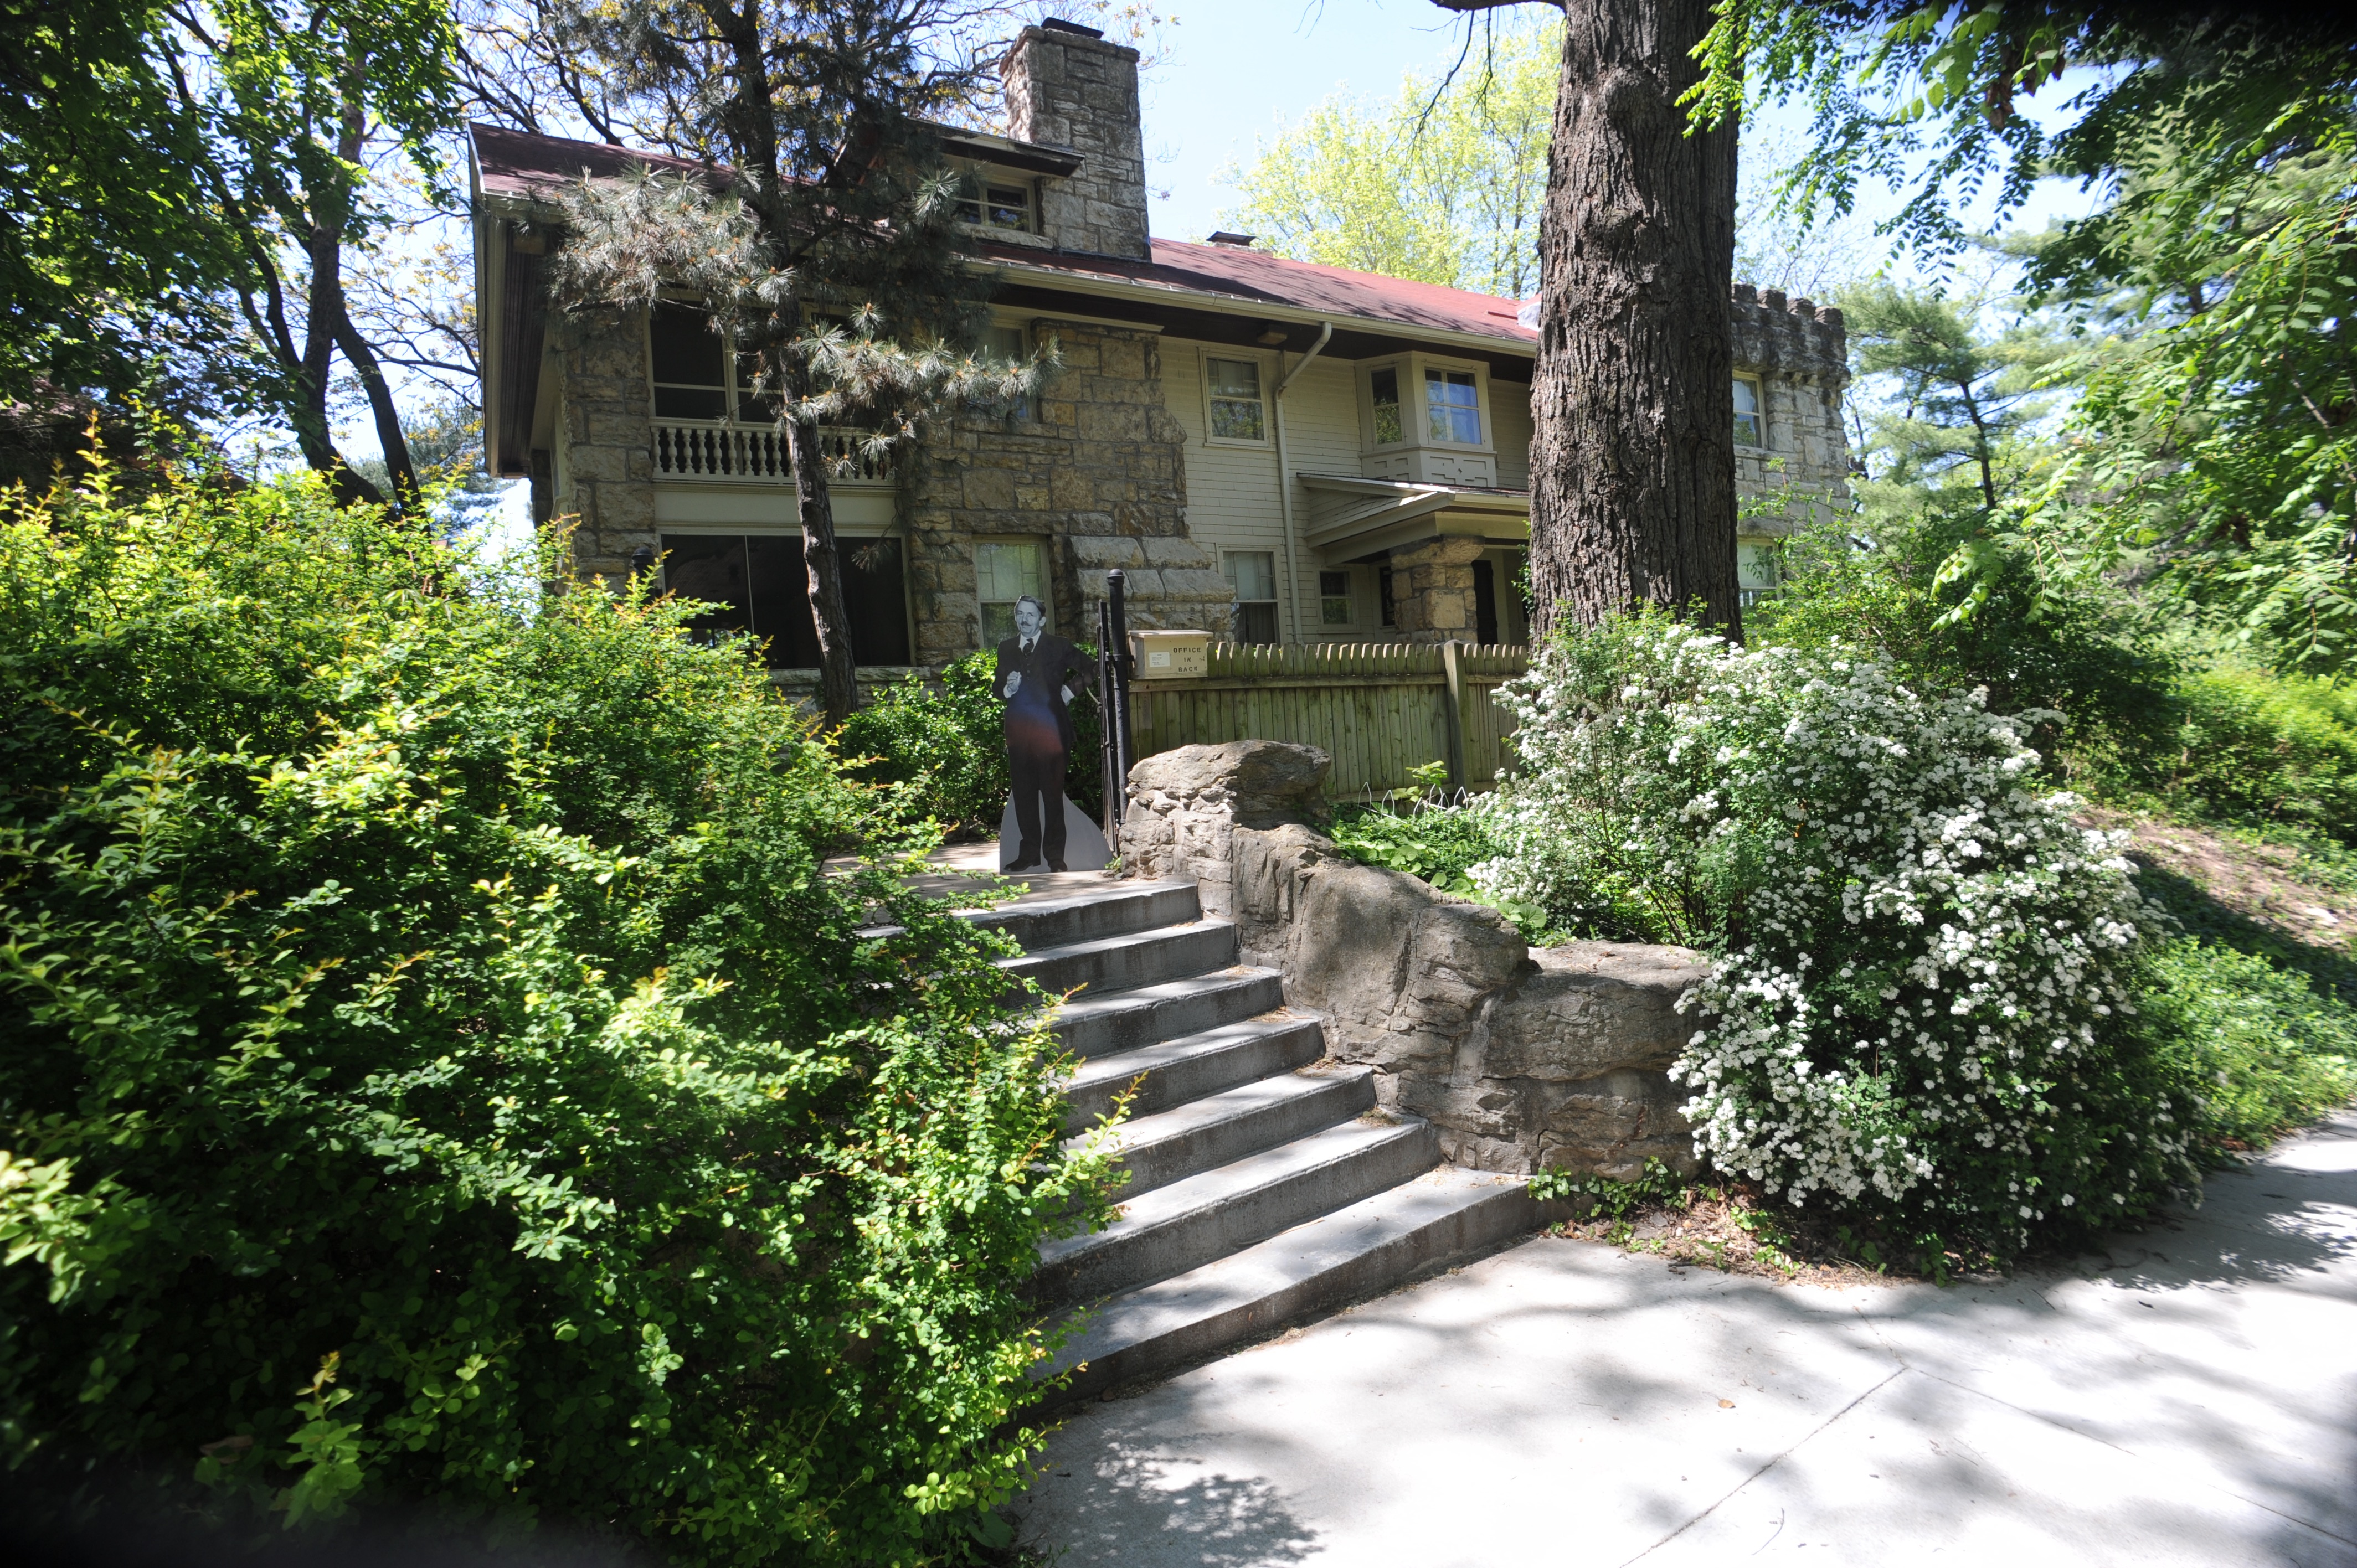 Attrayant Roanoke Park, Spring Home And Garden Tour